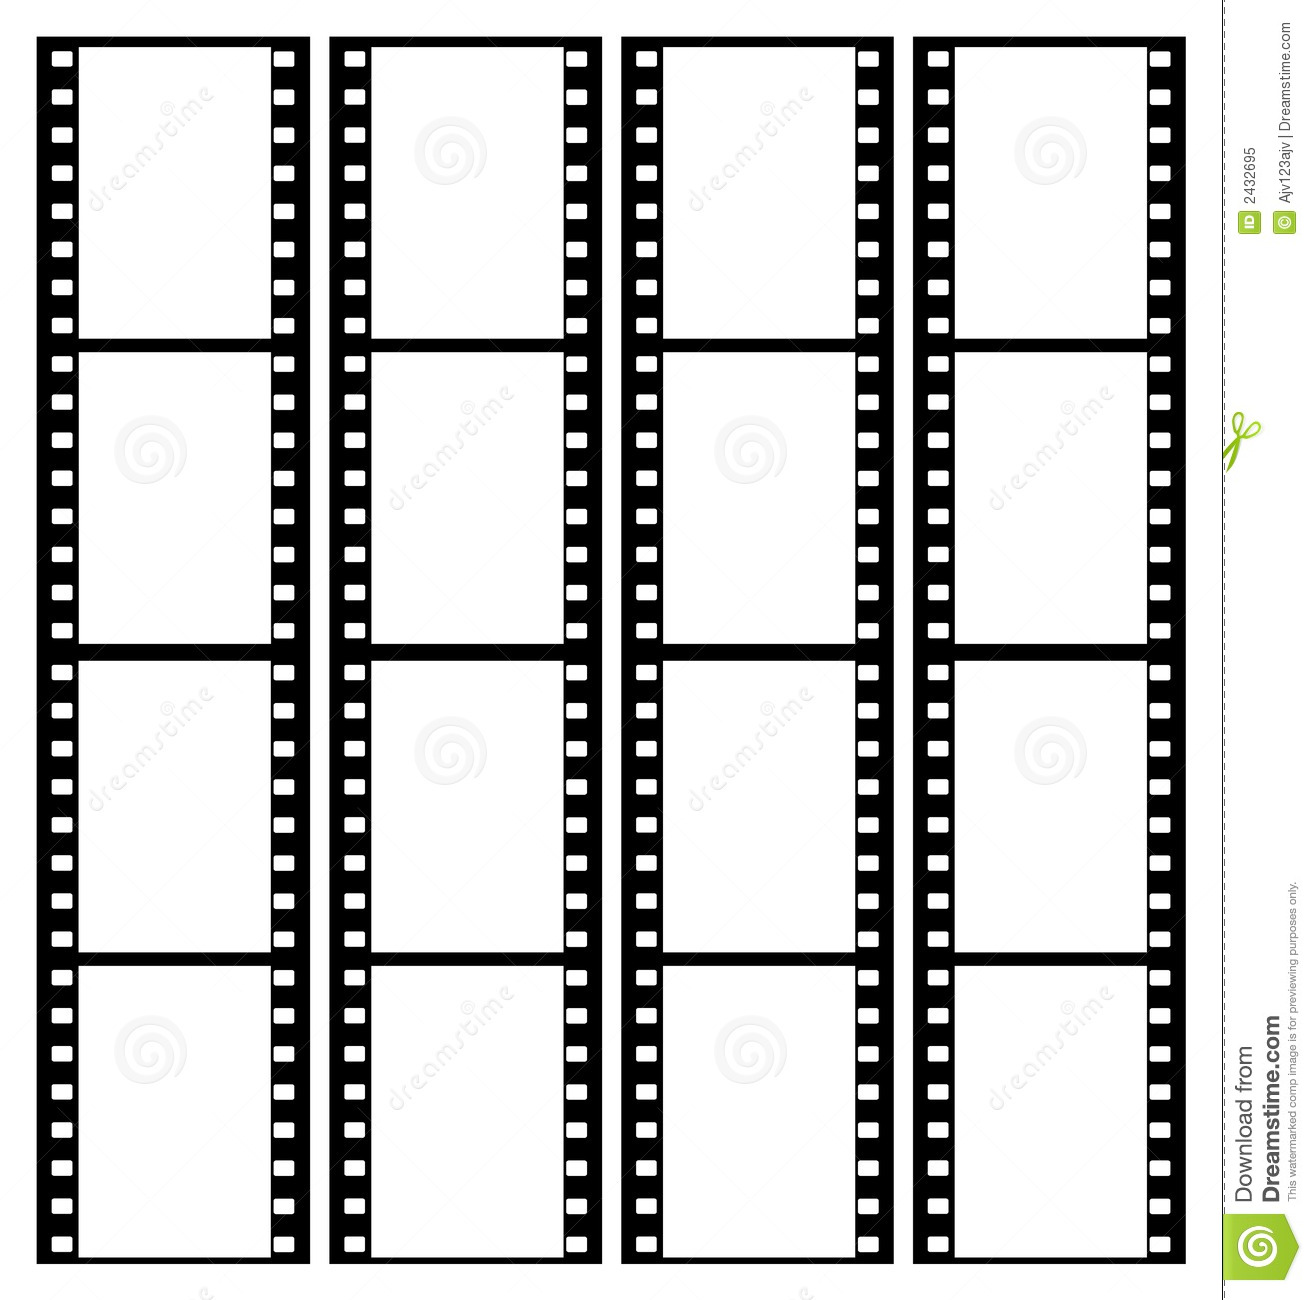 35mm Film Strip Frames Frame Stock Vector - Illustration of kodak ...